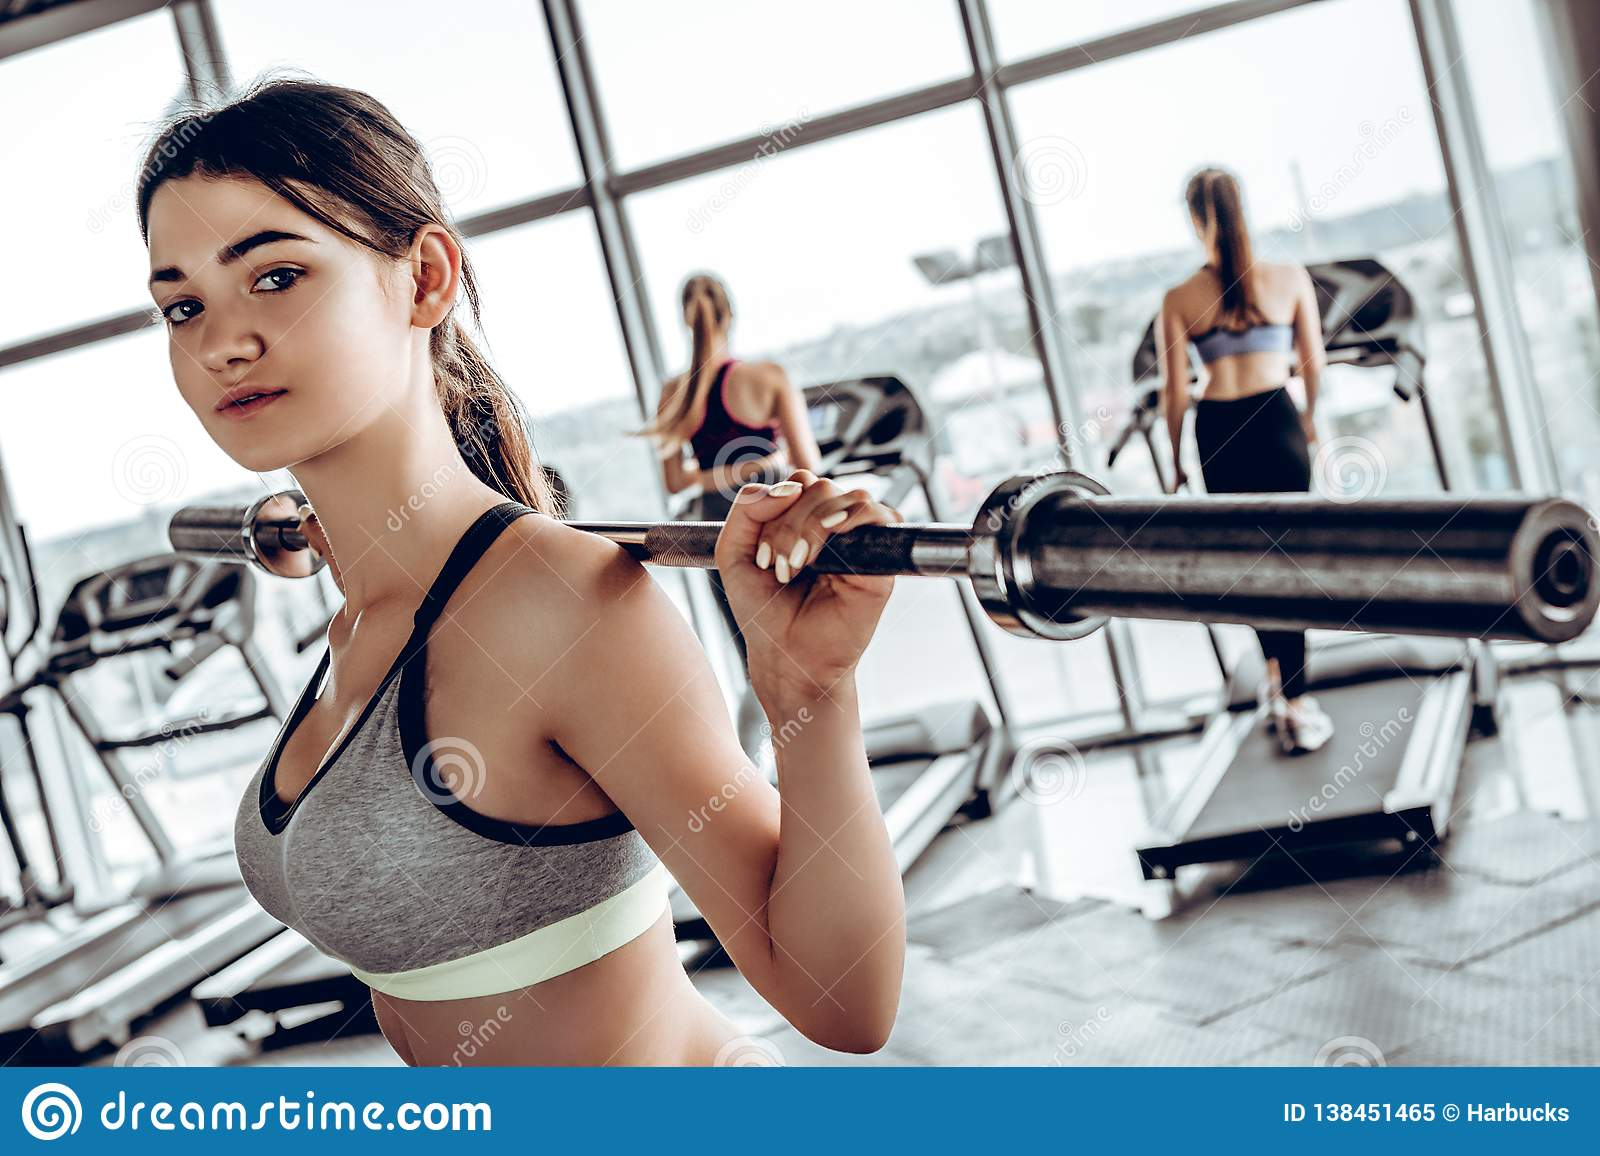 Strong young woman with beautiful athletic body doing exercises with barbell